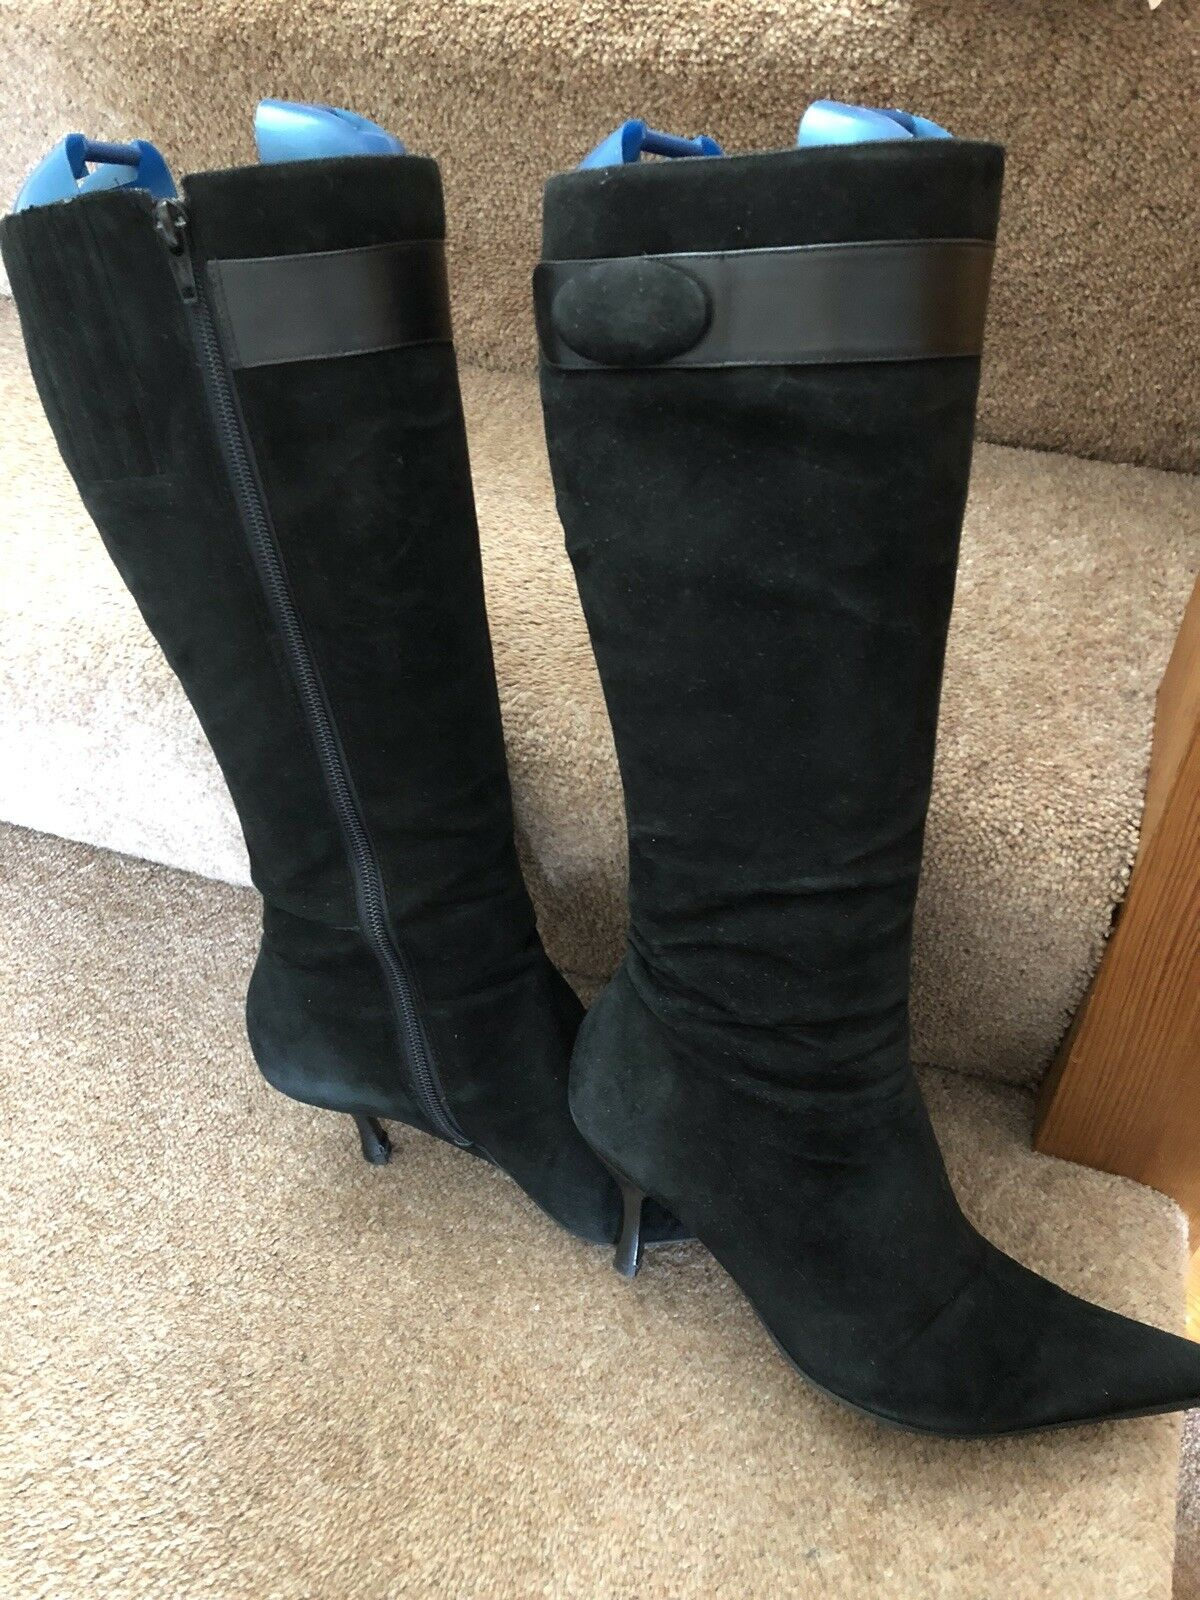 LADIES UK 5 EU38 PRINCIPLES BLACK WITH LEATHER DETAIL SUEDE KNEE LENGTH BOOTS